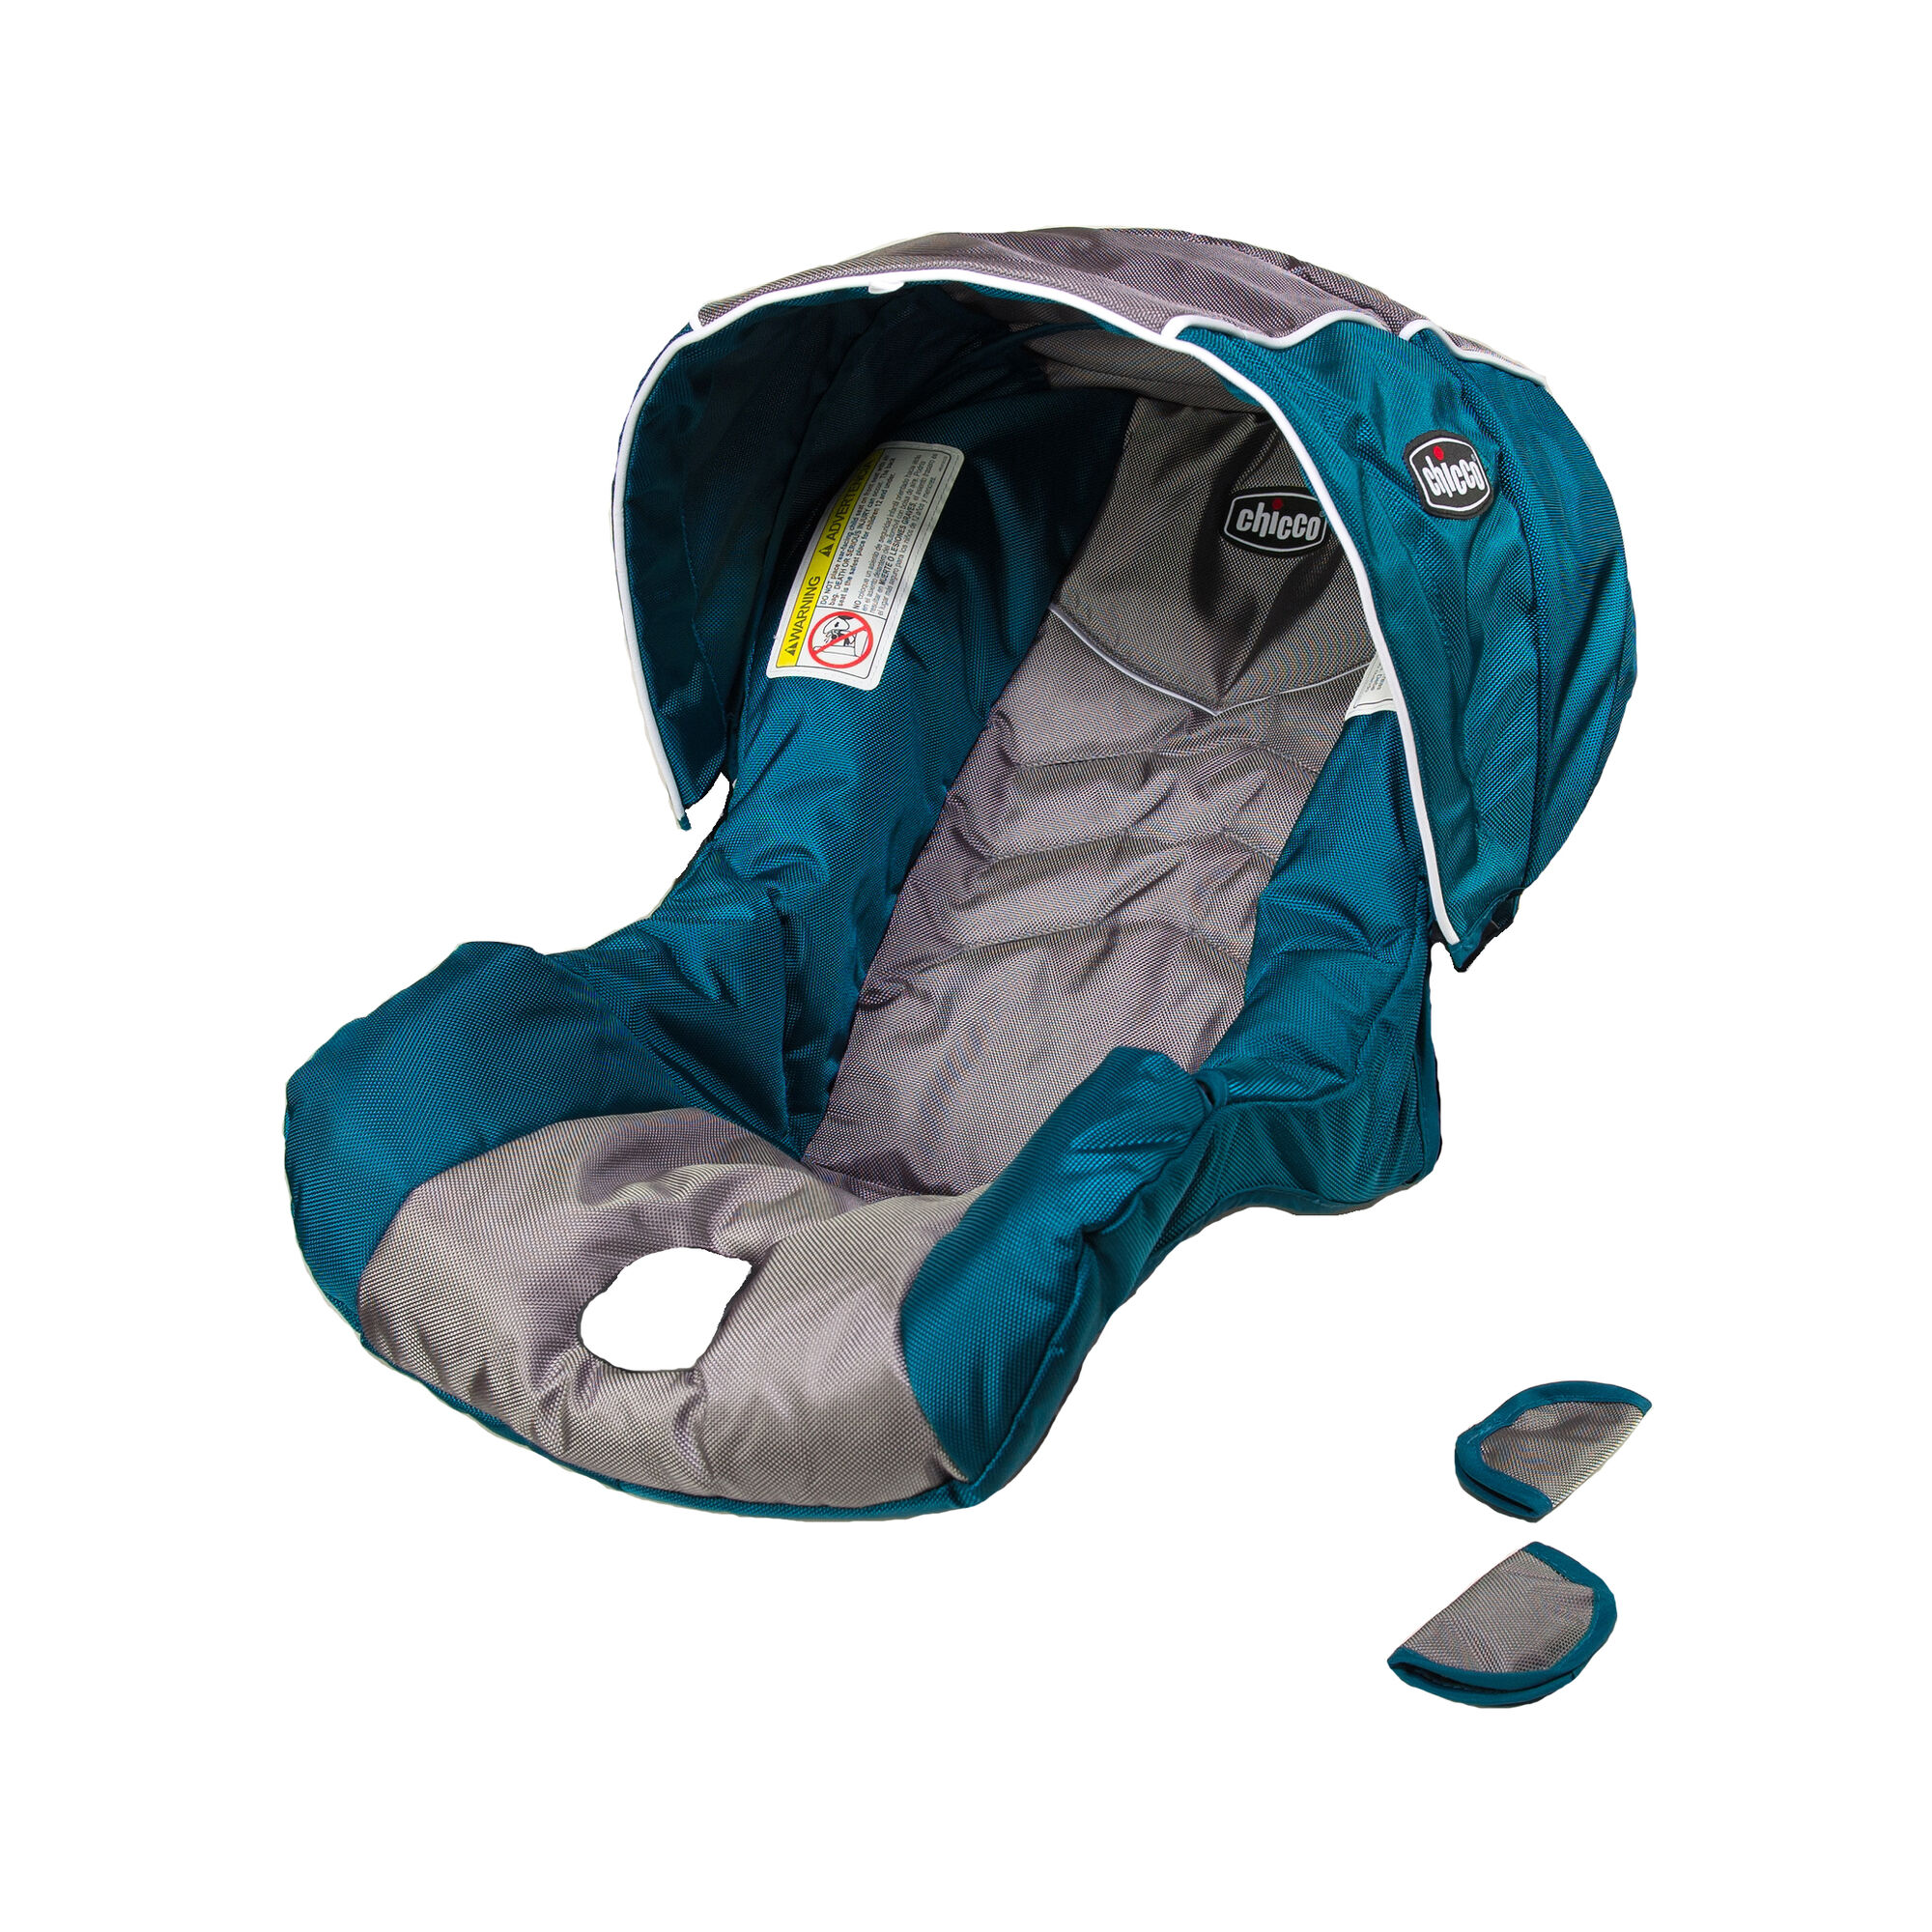 Chicco Keyfit  Car Seat Cover